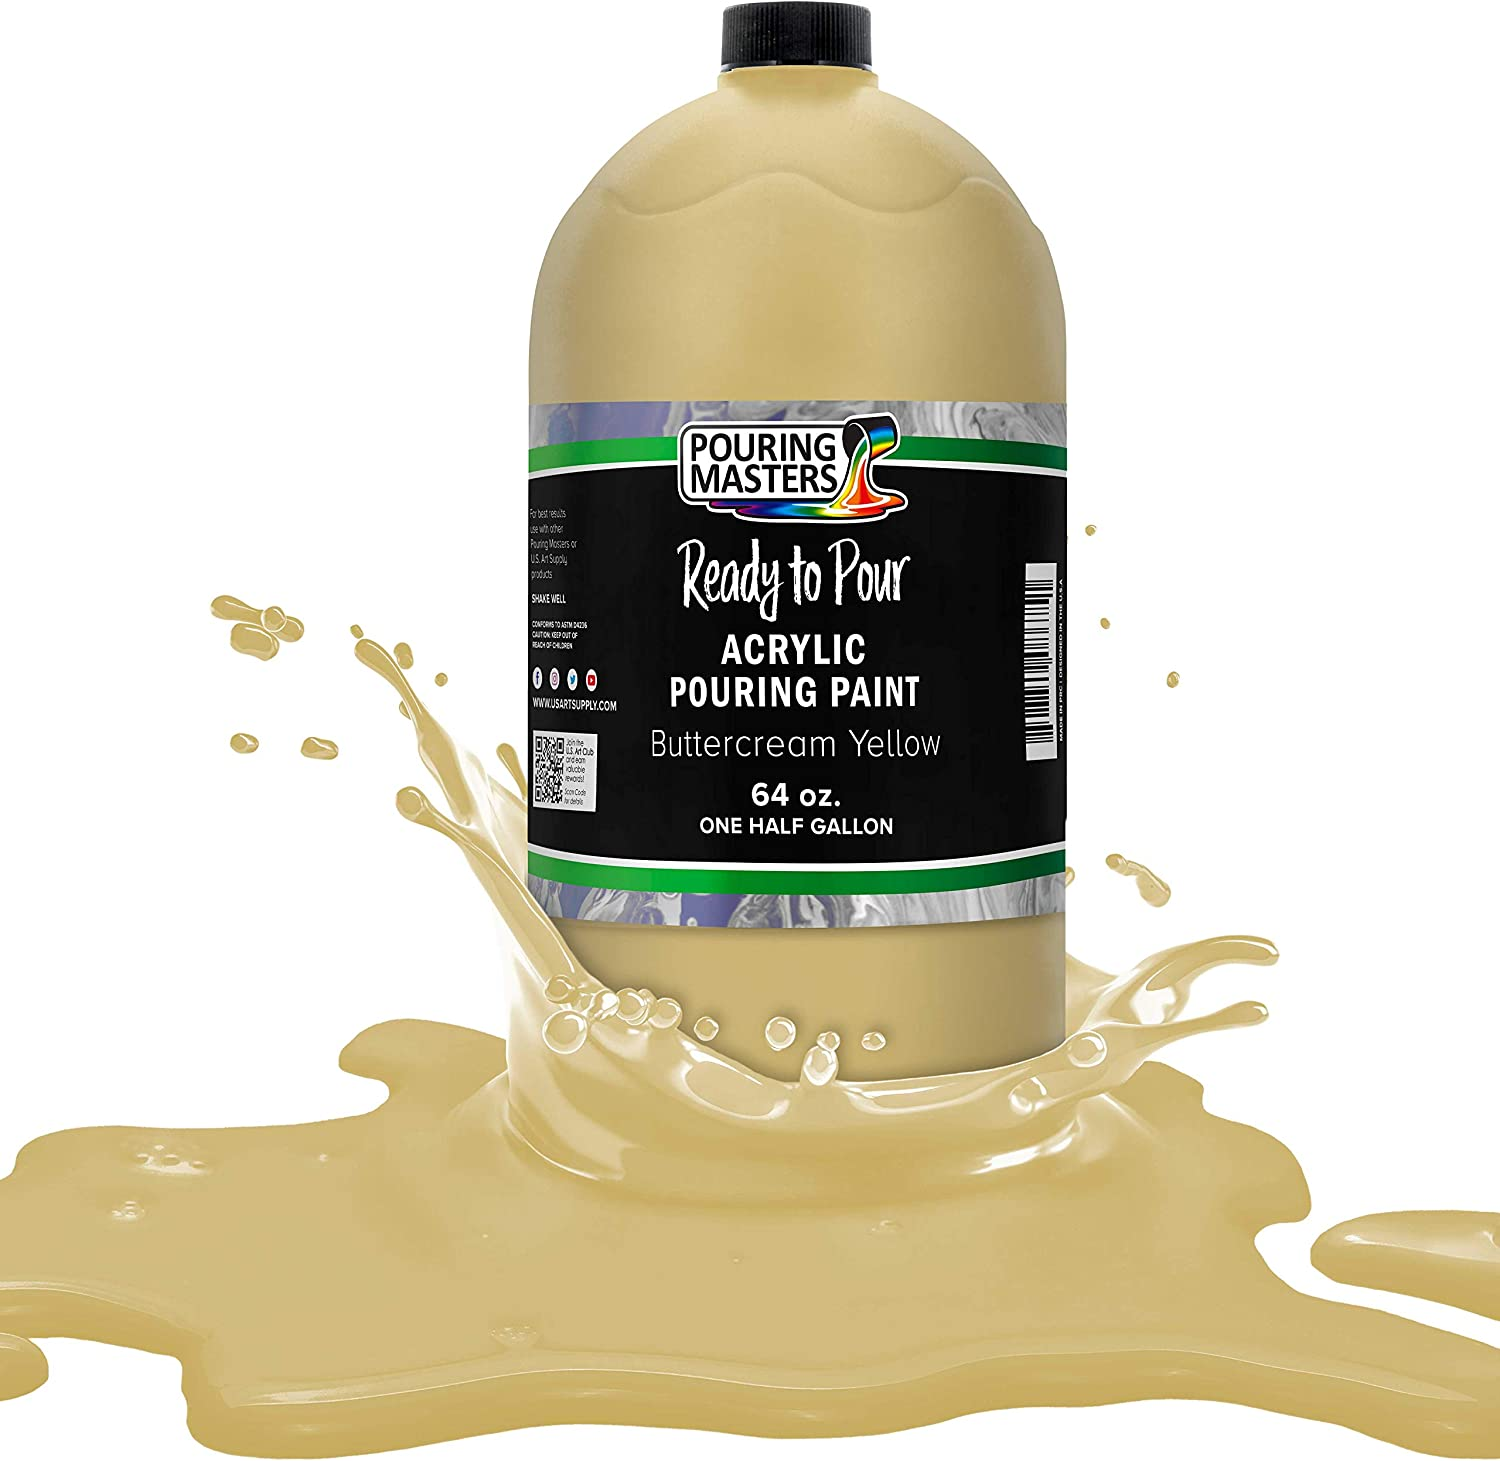 Pouring Masters Buttercream El Paso Mall Yellow Pour Reservation to Ready Acrylic